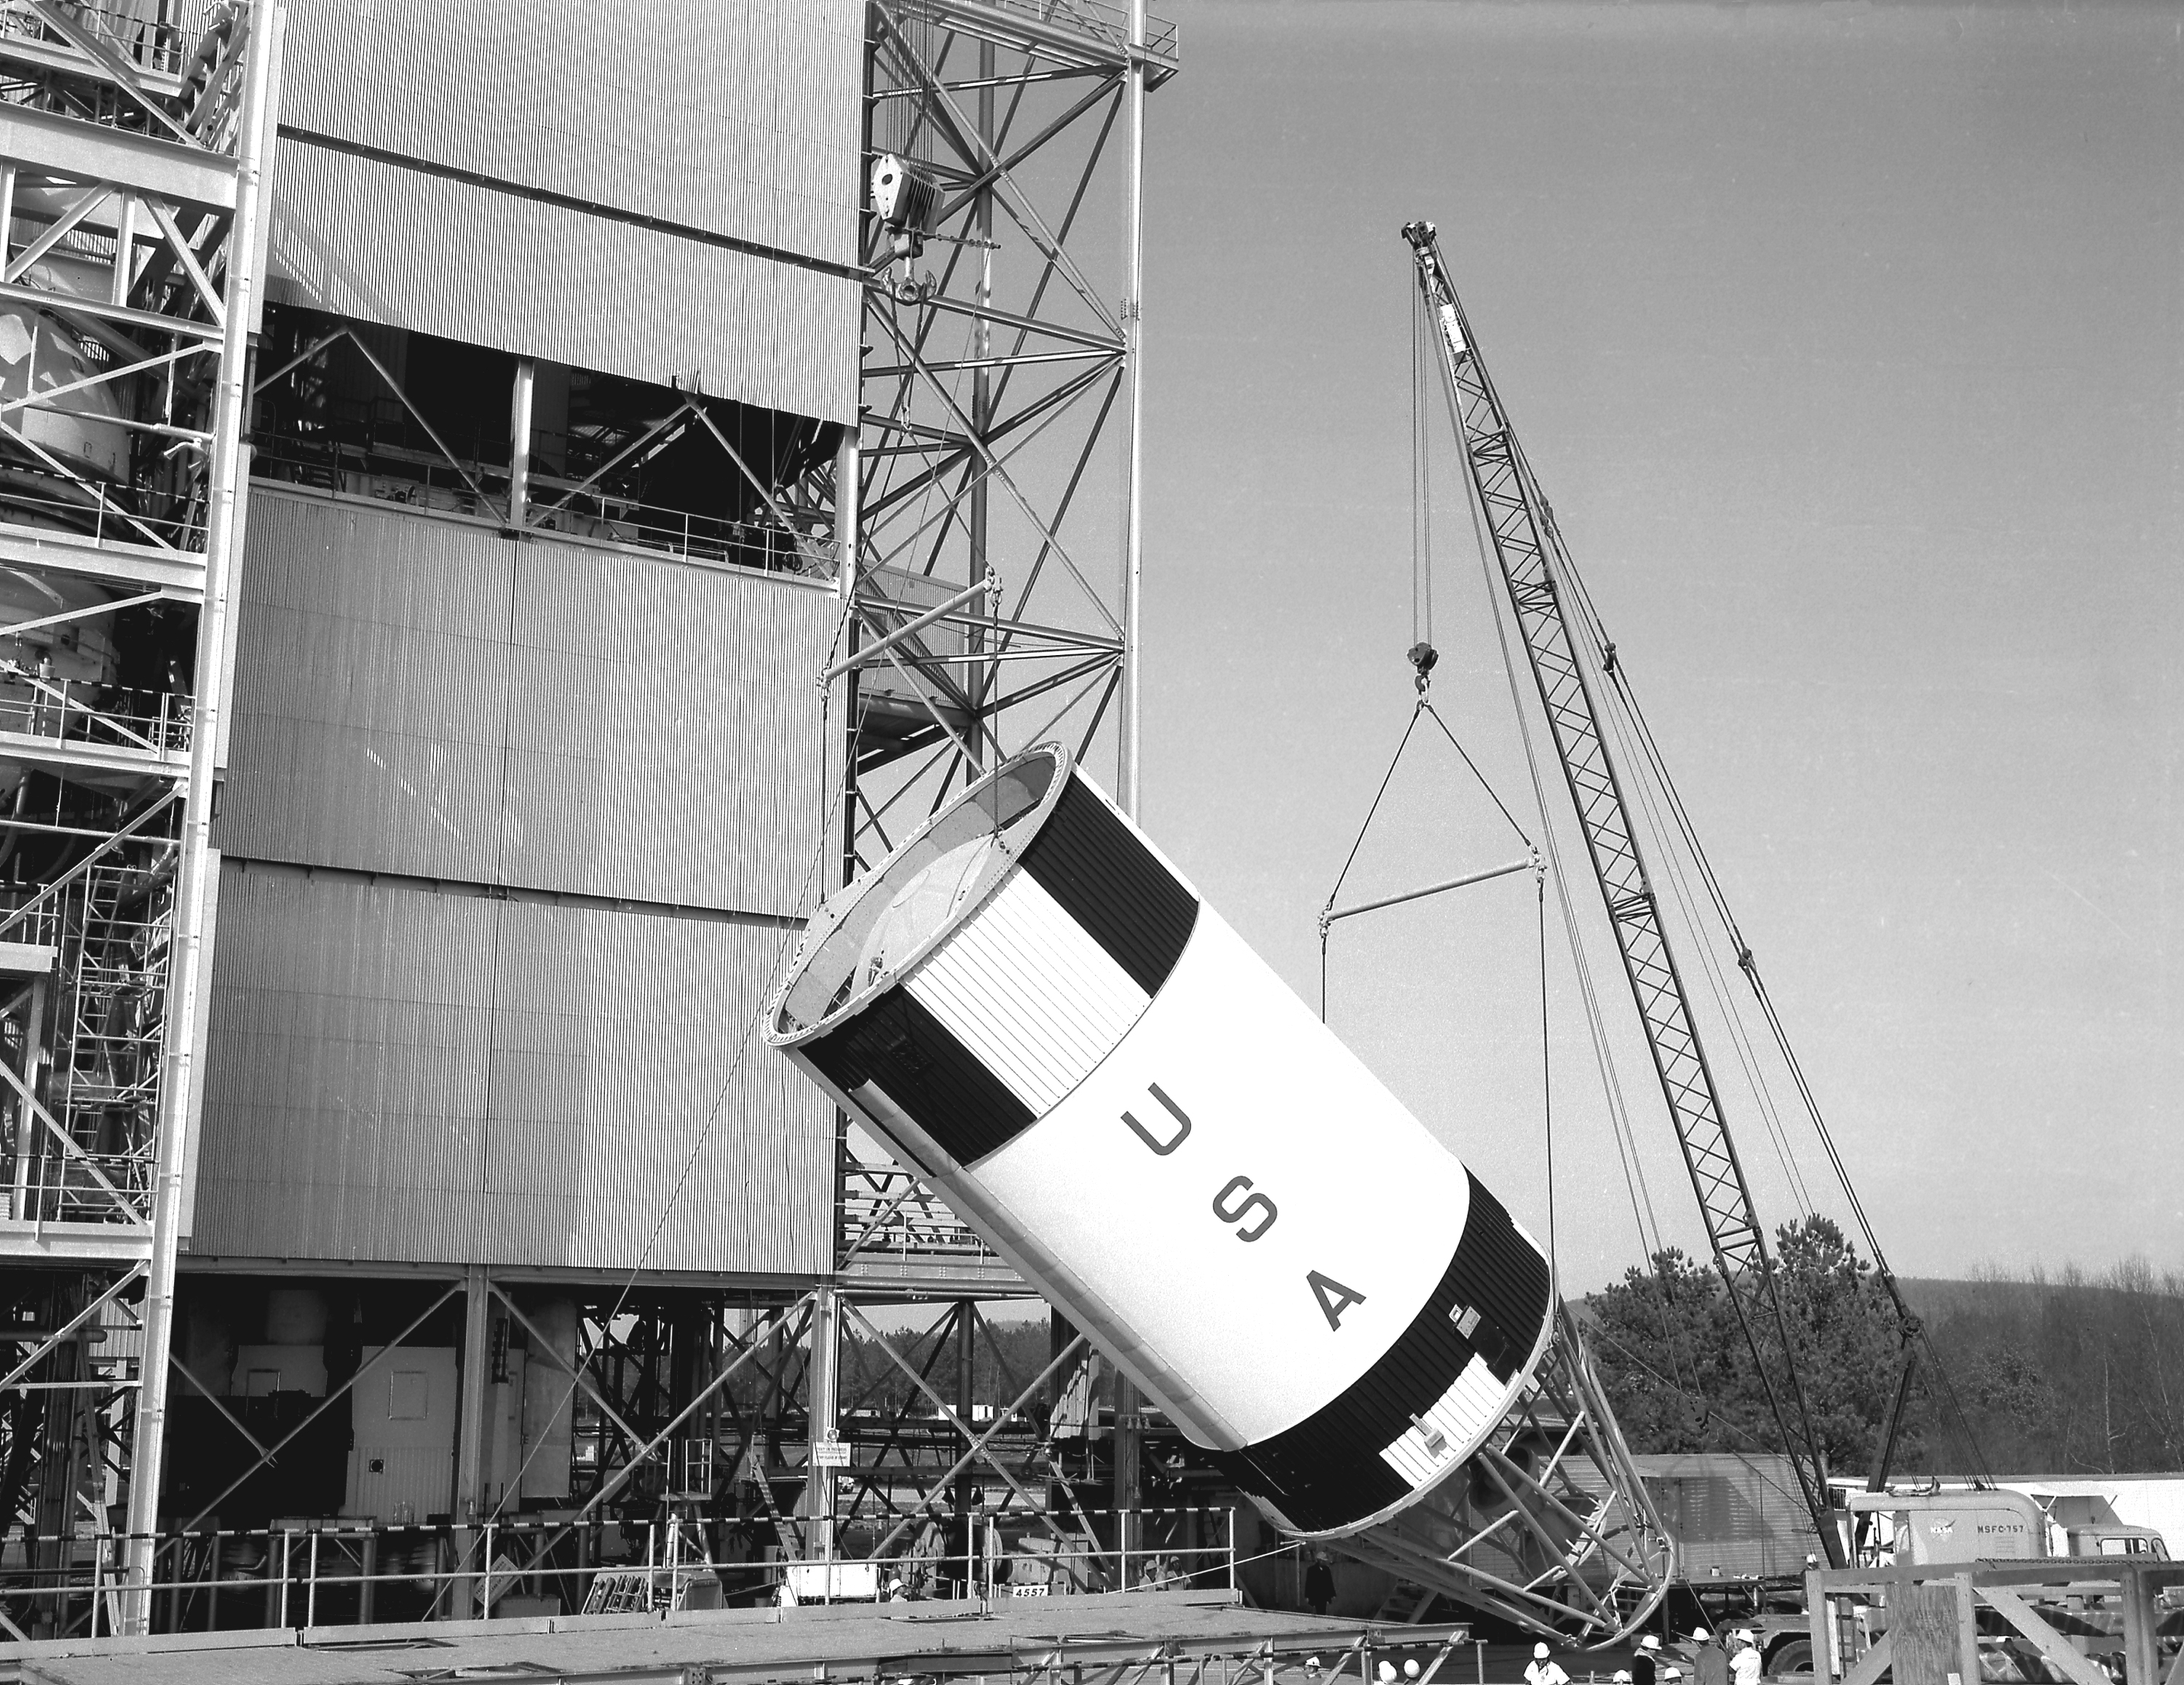 This Week in NASA History: Saturn IB Placed in Marshall Test Stand ...